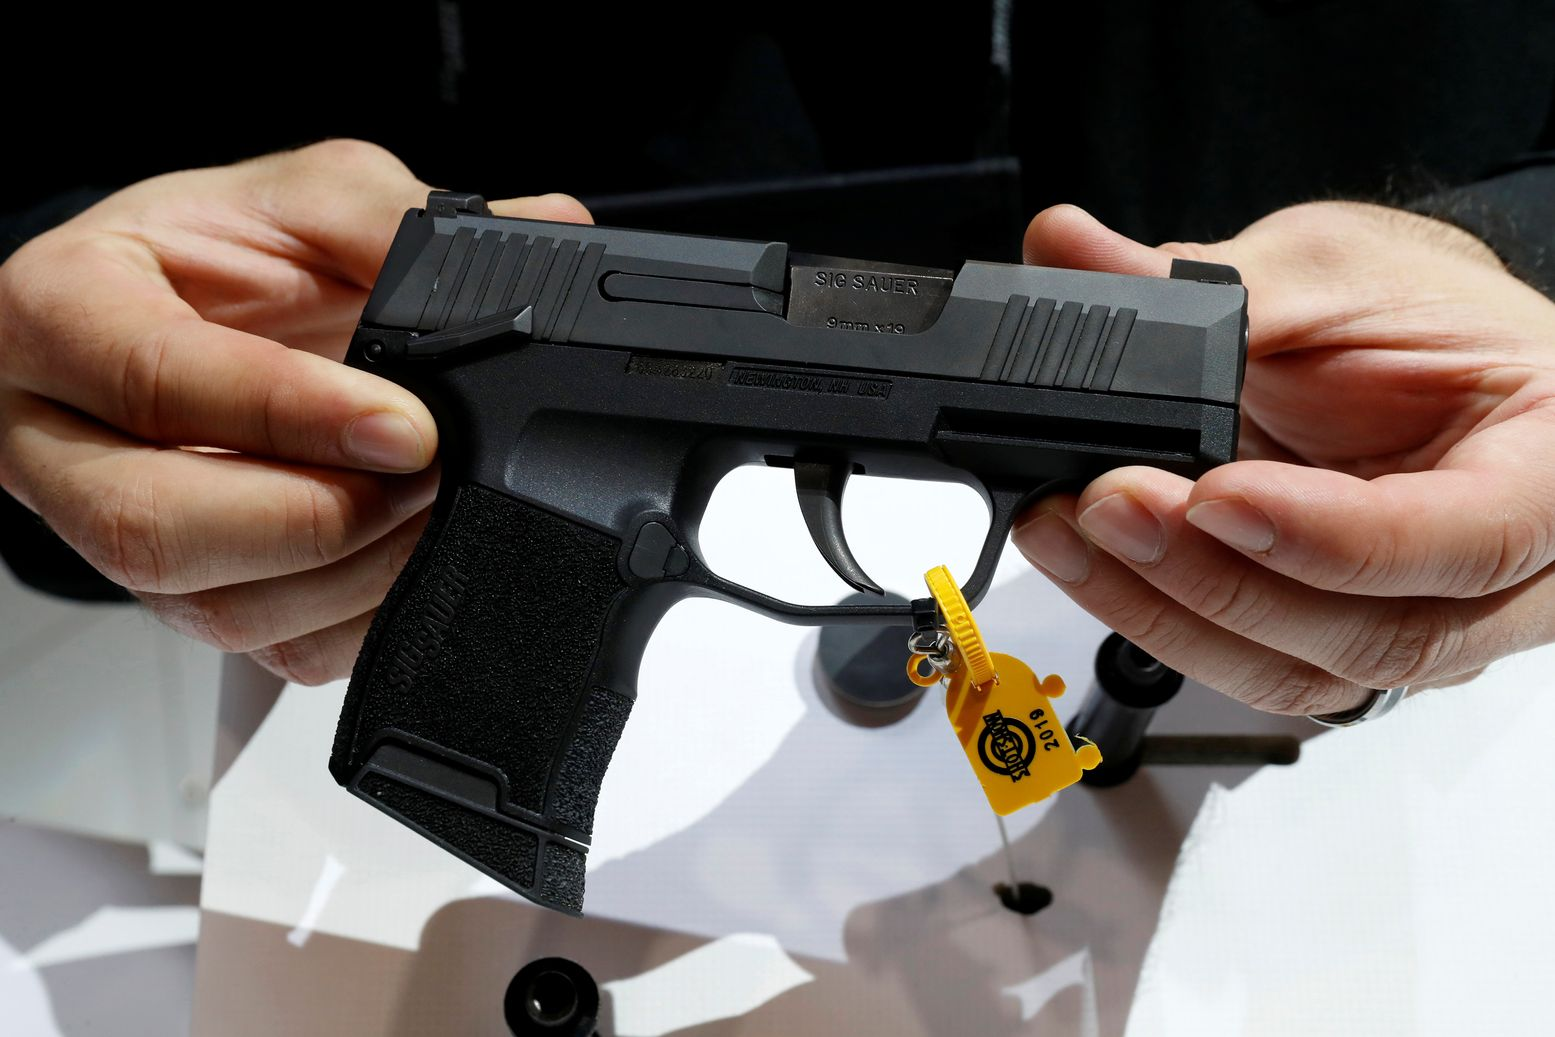 The Sig Sauer P365 Is the Hottest Semi-Automatic On the Market